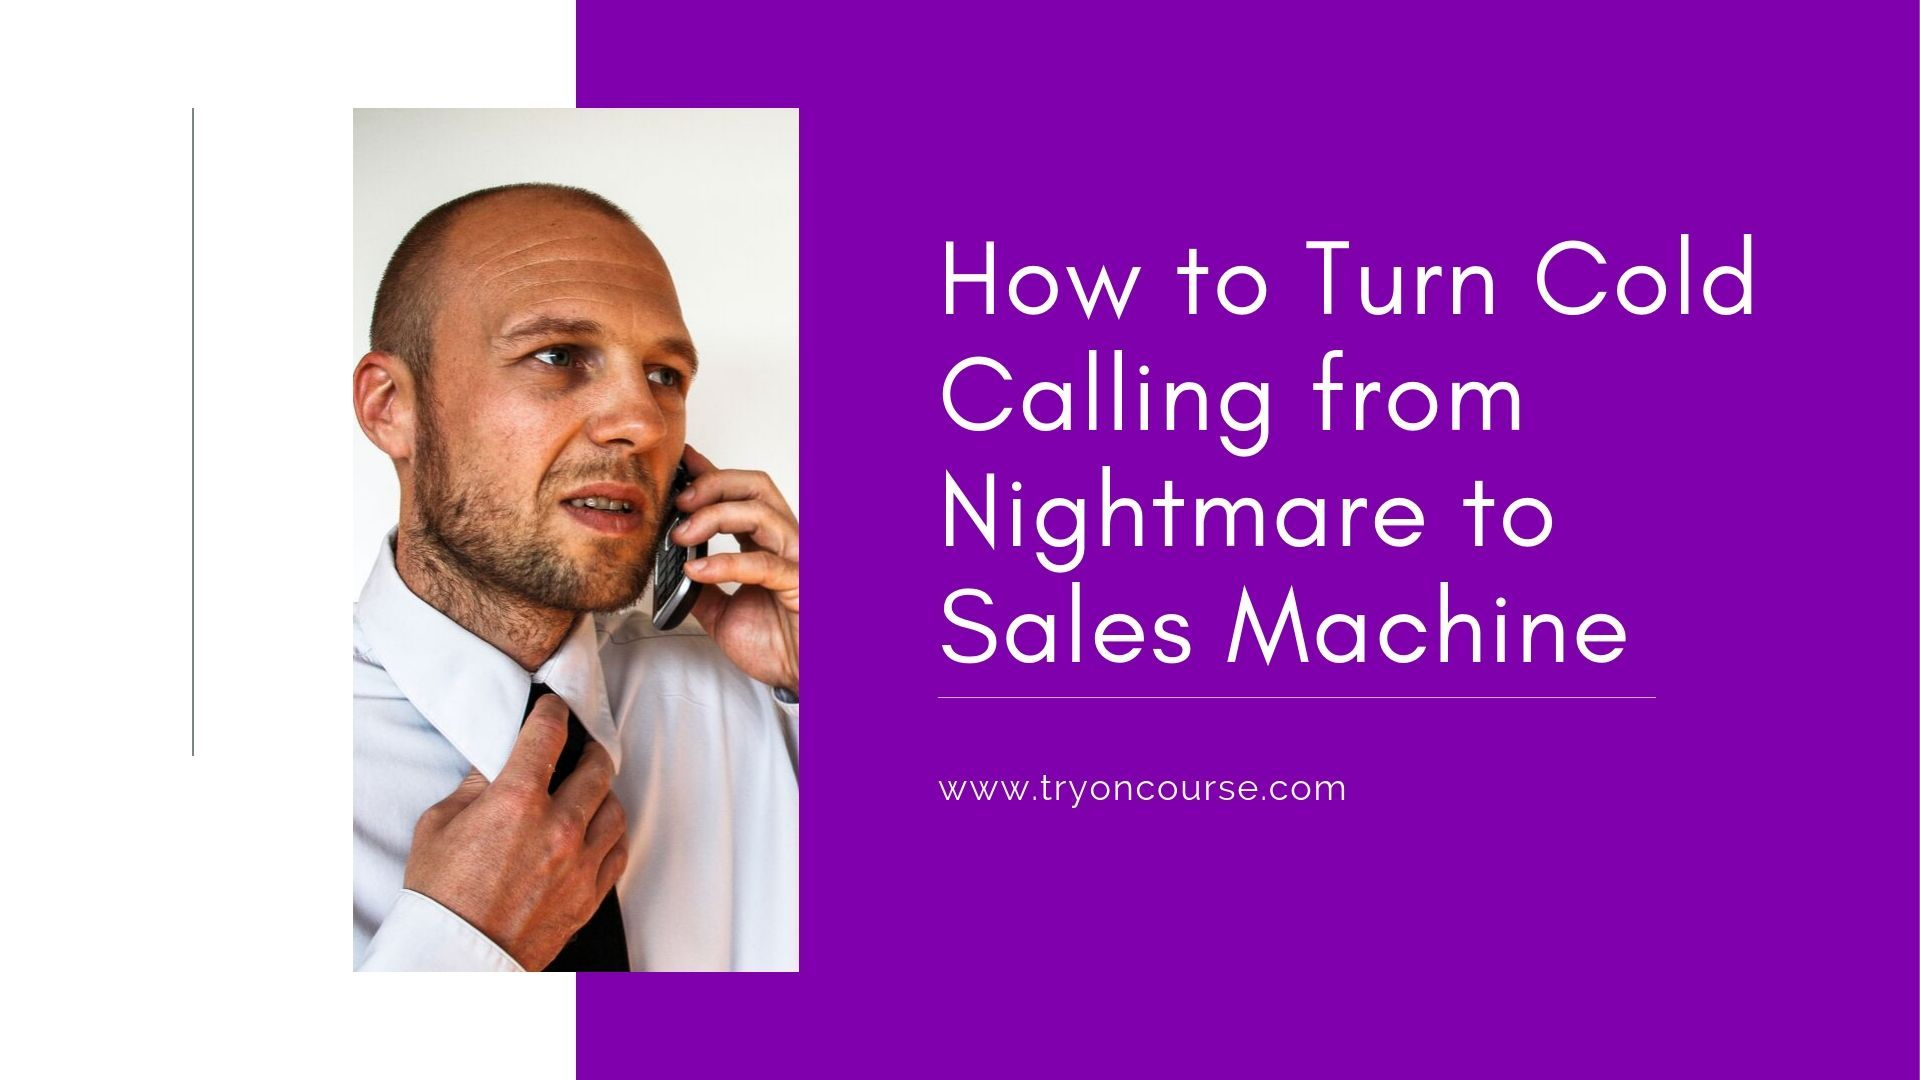 How to Turn Cold Calling from Nightmare to Sales Machine